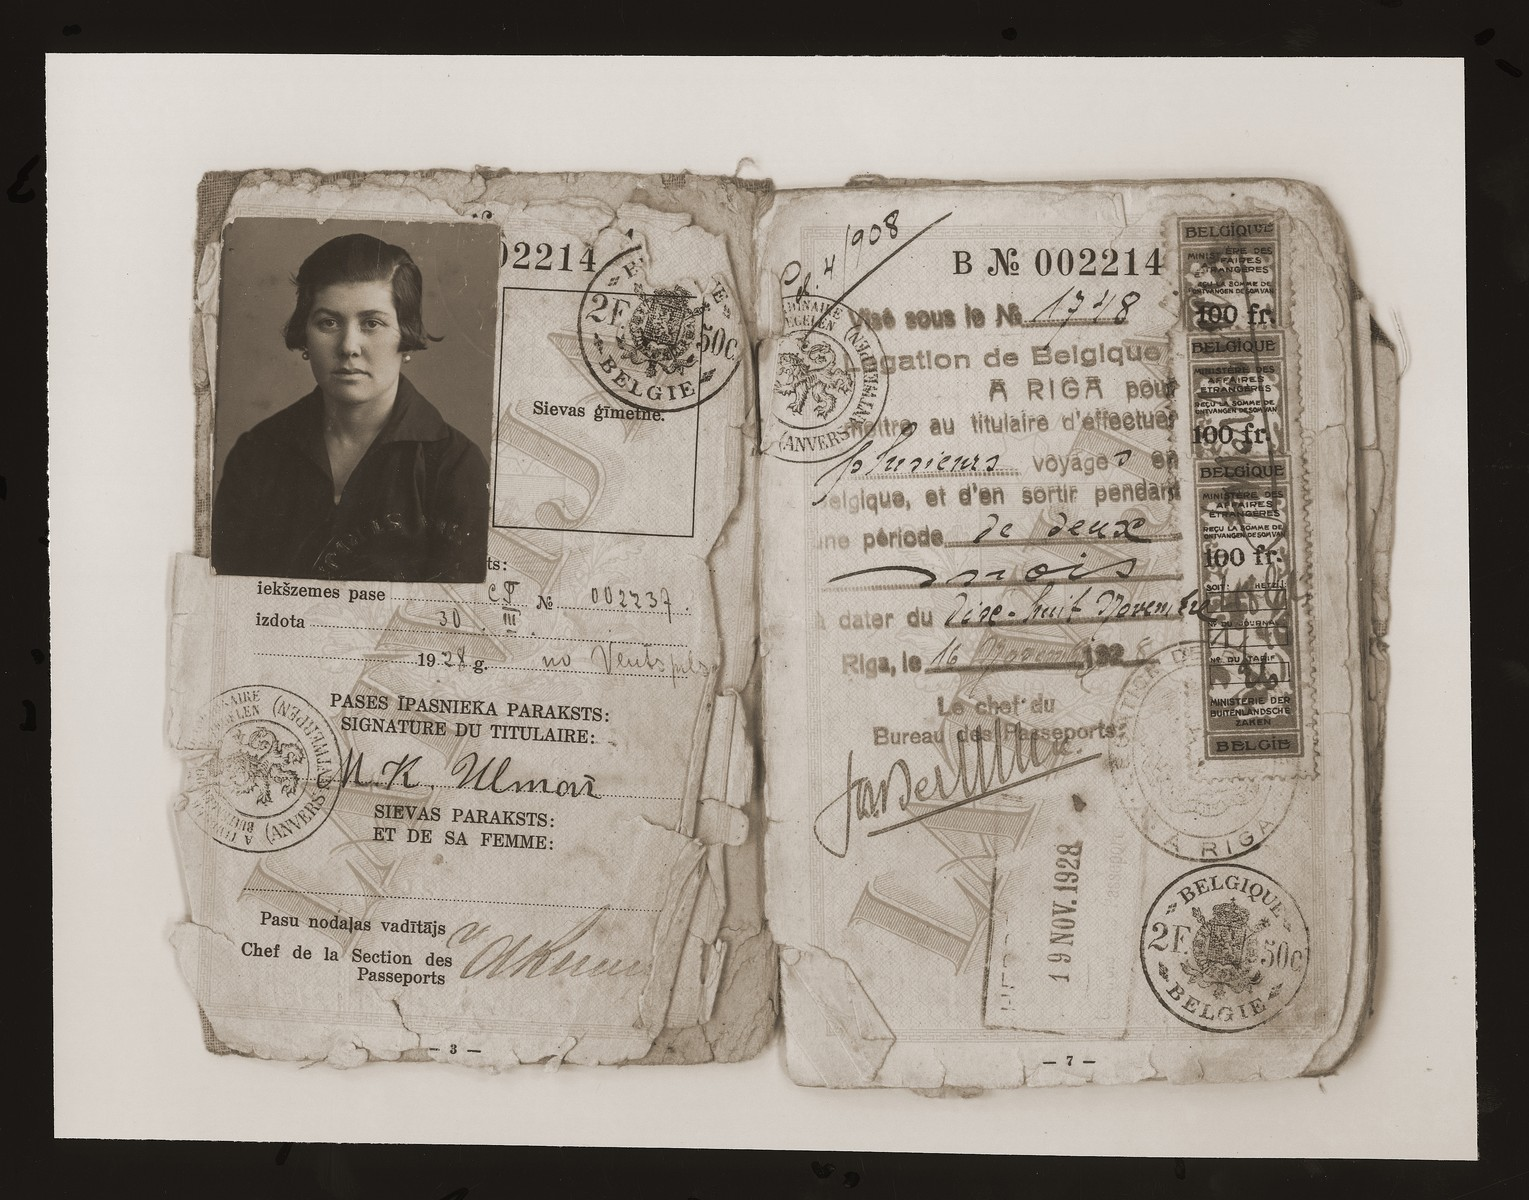 A page of the Latvian passport of Mirjana Ulman, which bears the temporary Belgian visa she used to get into the country in 1928.  The visa was issued by the Belgian Legation in Riga.  According to the terms of the visa, she was permitted to stay in Belgium for only one year.